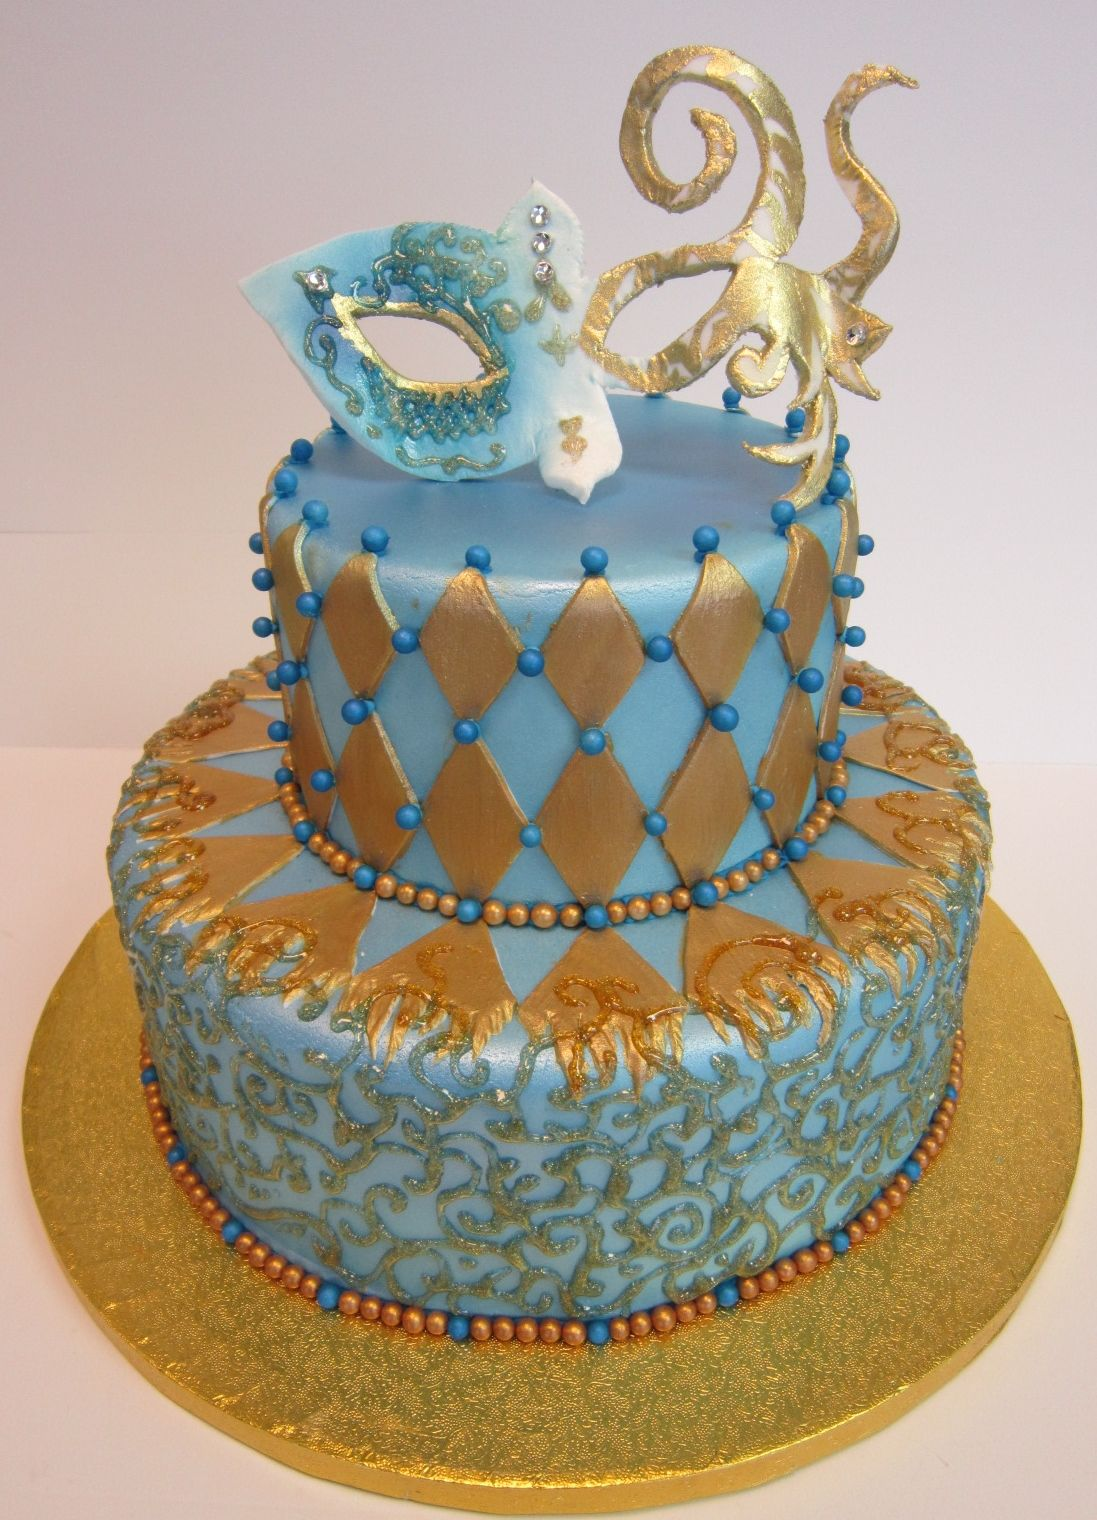 Pin on Wedding cakes by ADC bakery